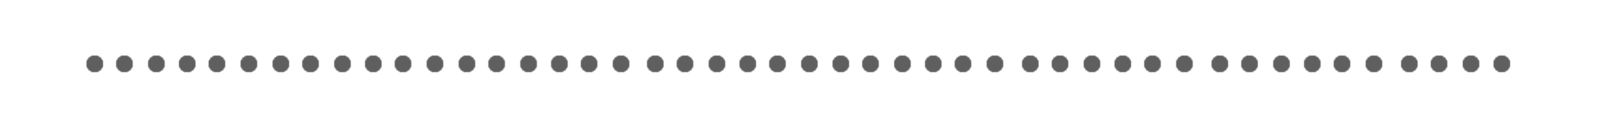 row of dots png